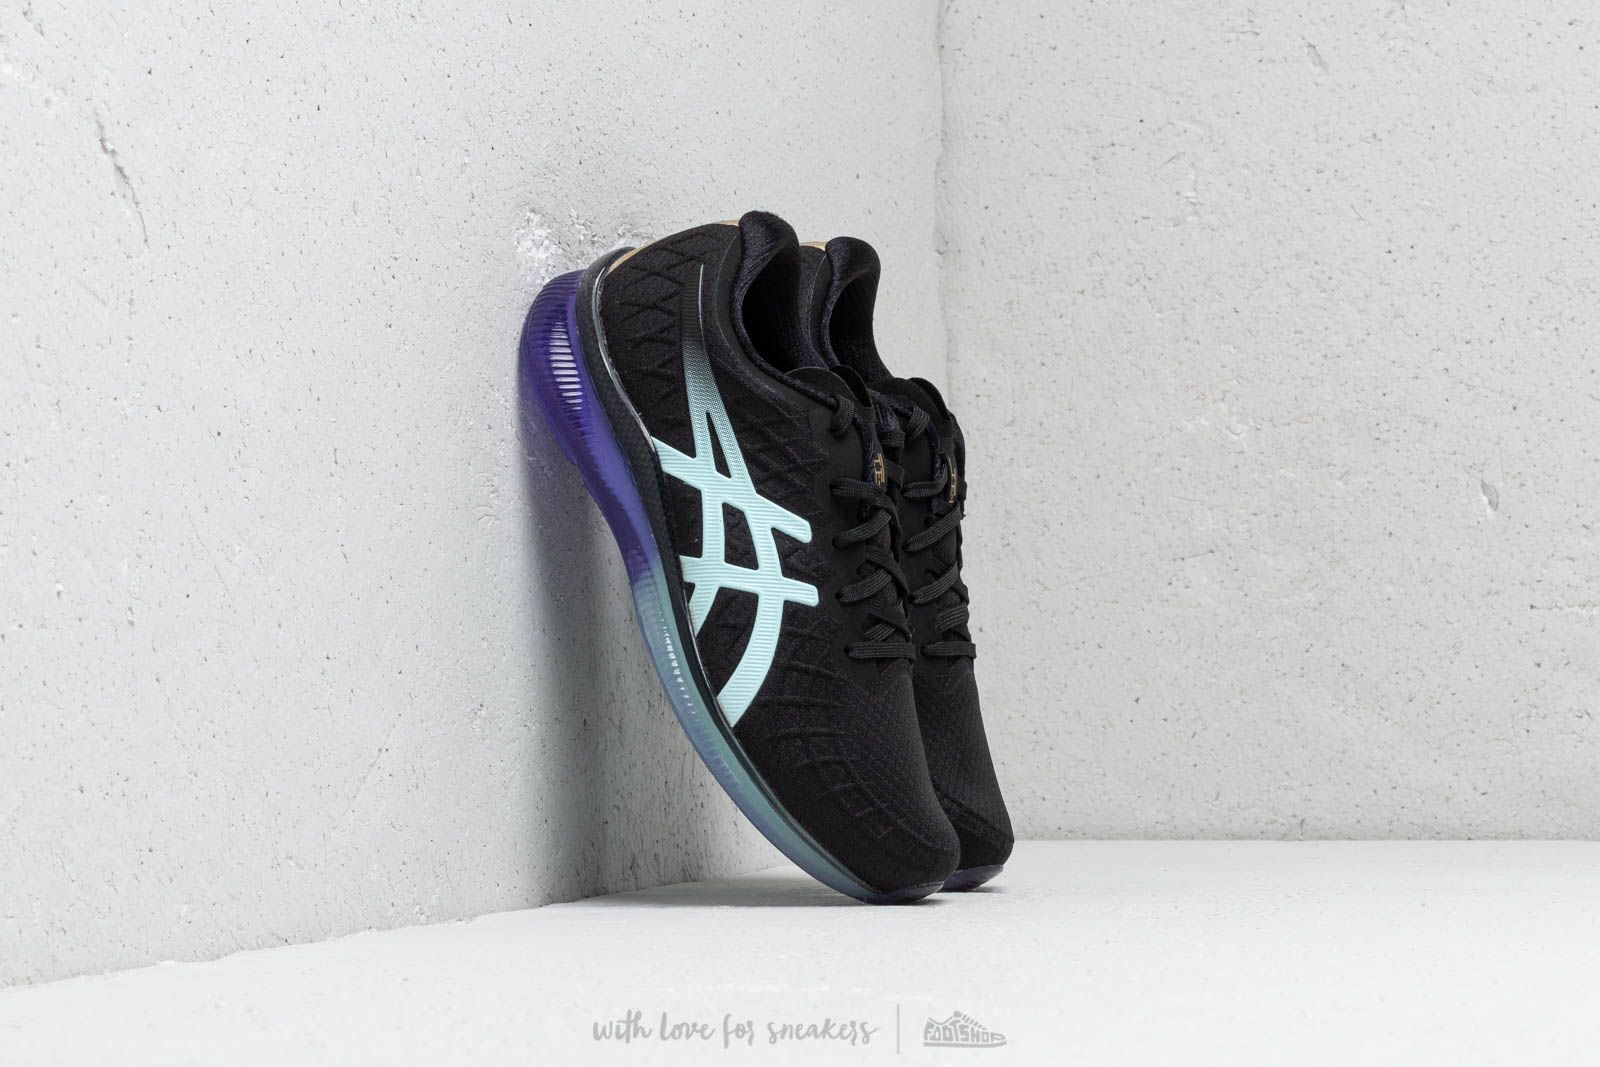 Asics Gel Quantum Infinity Black Icy Morning | Footshop